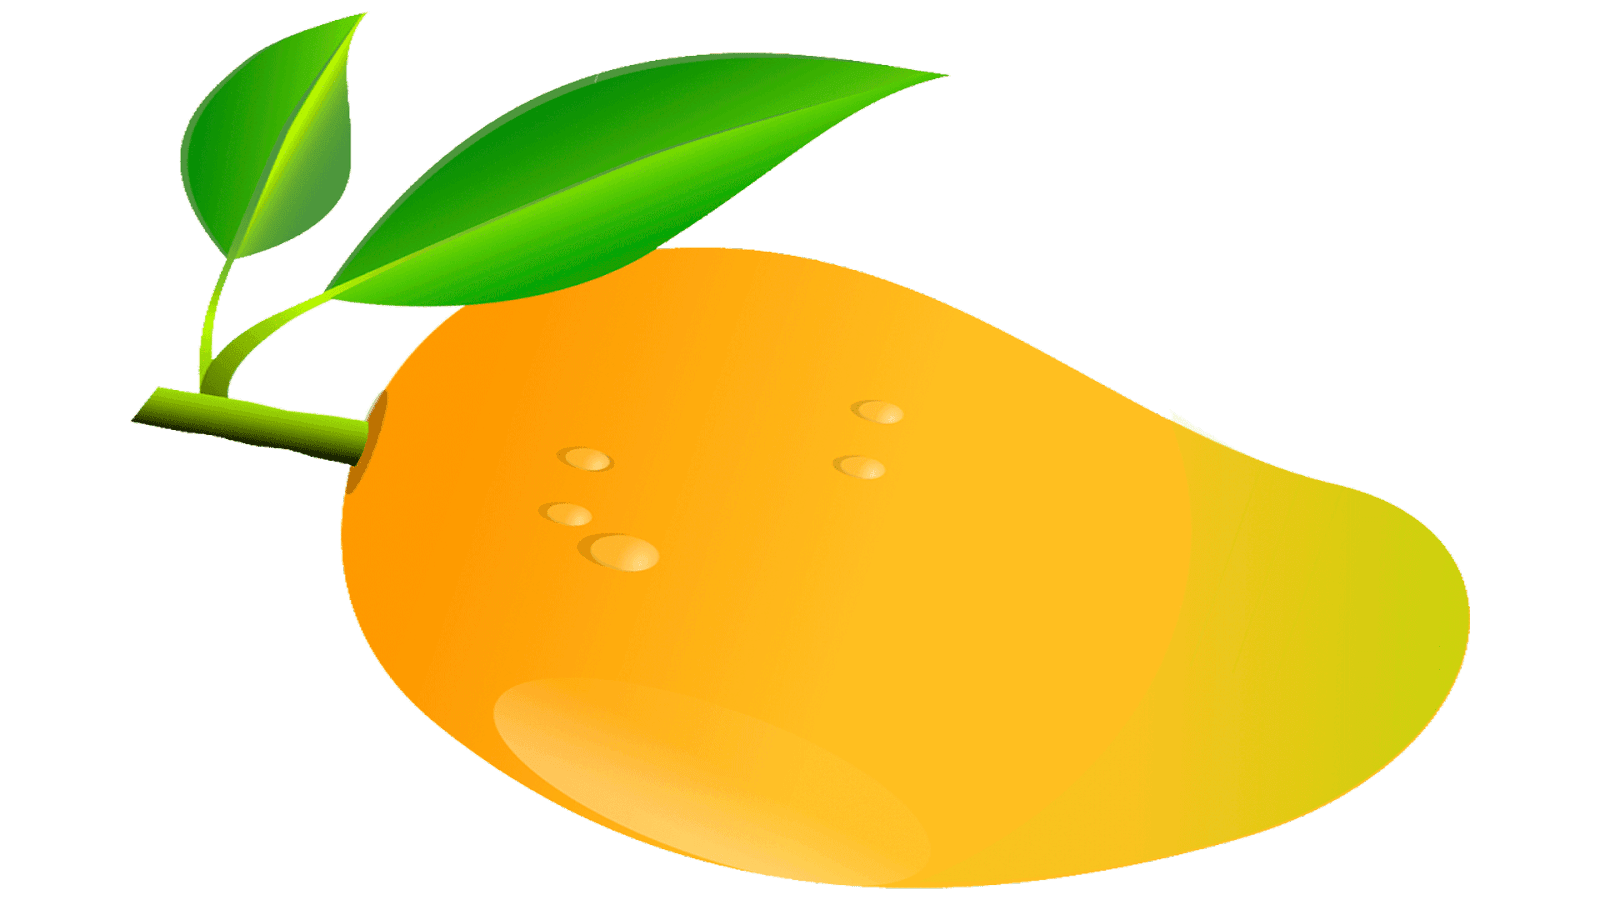 Mango vector png. Image result for clipart